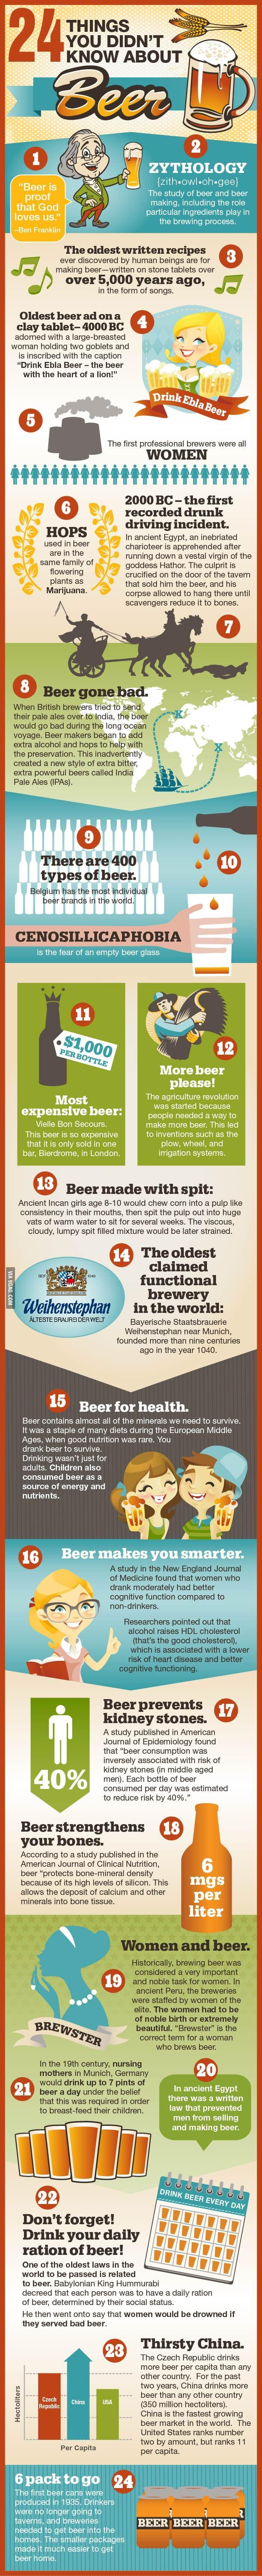 24 Things You Don't Know About Beer